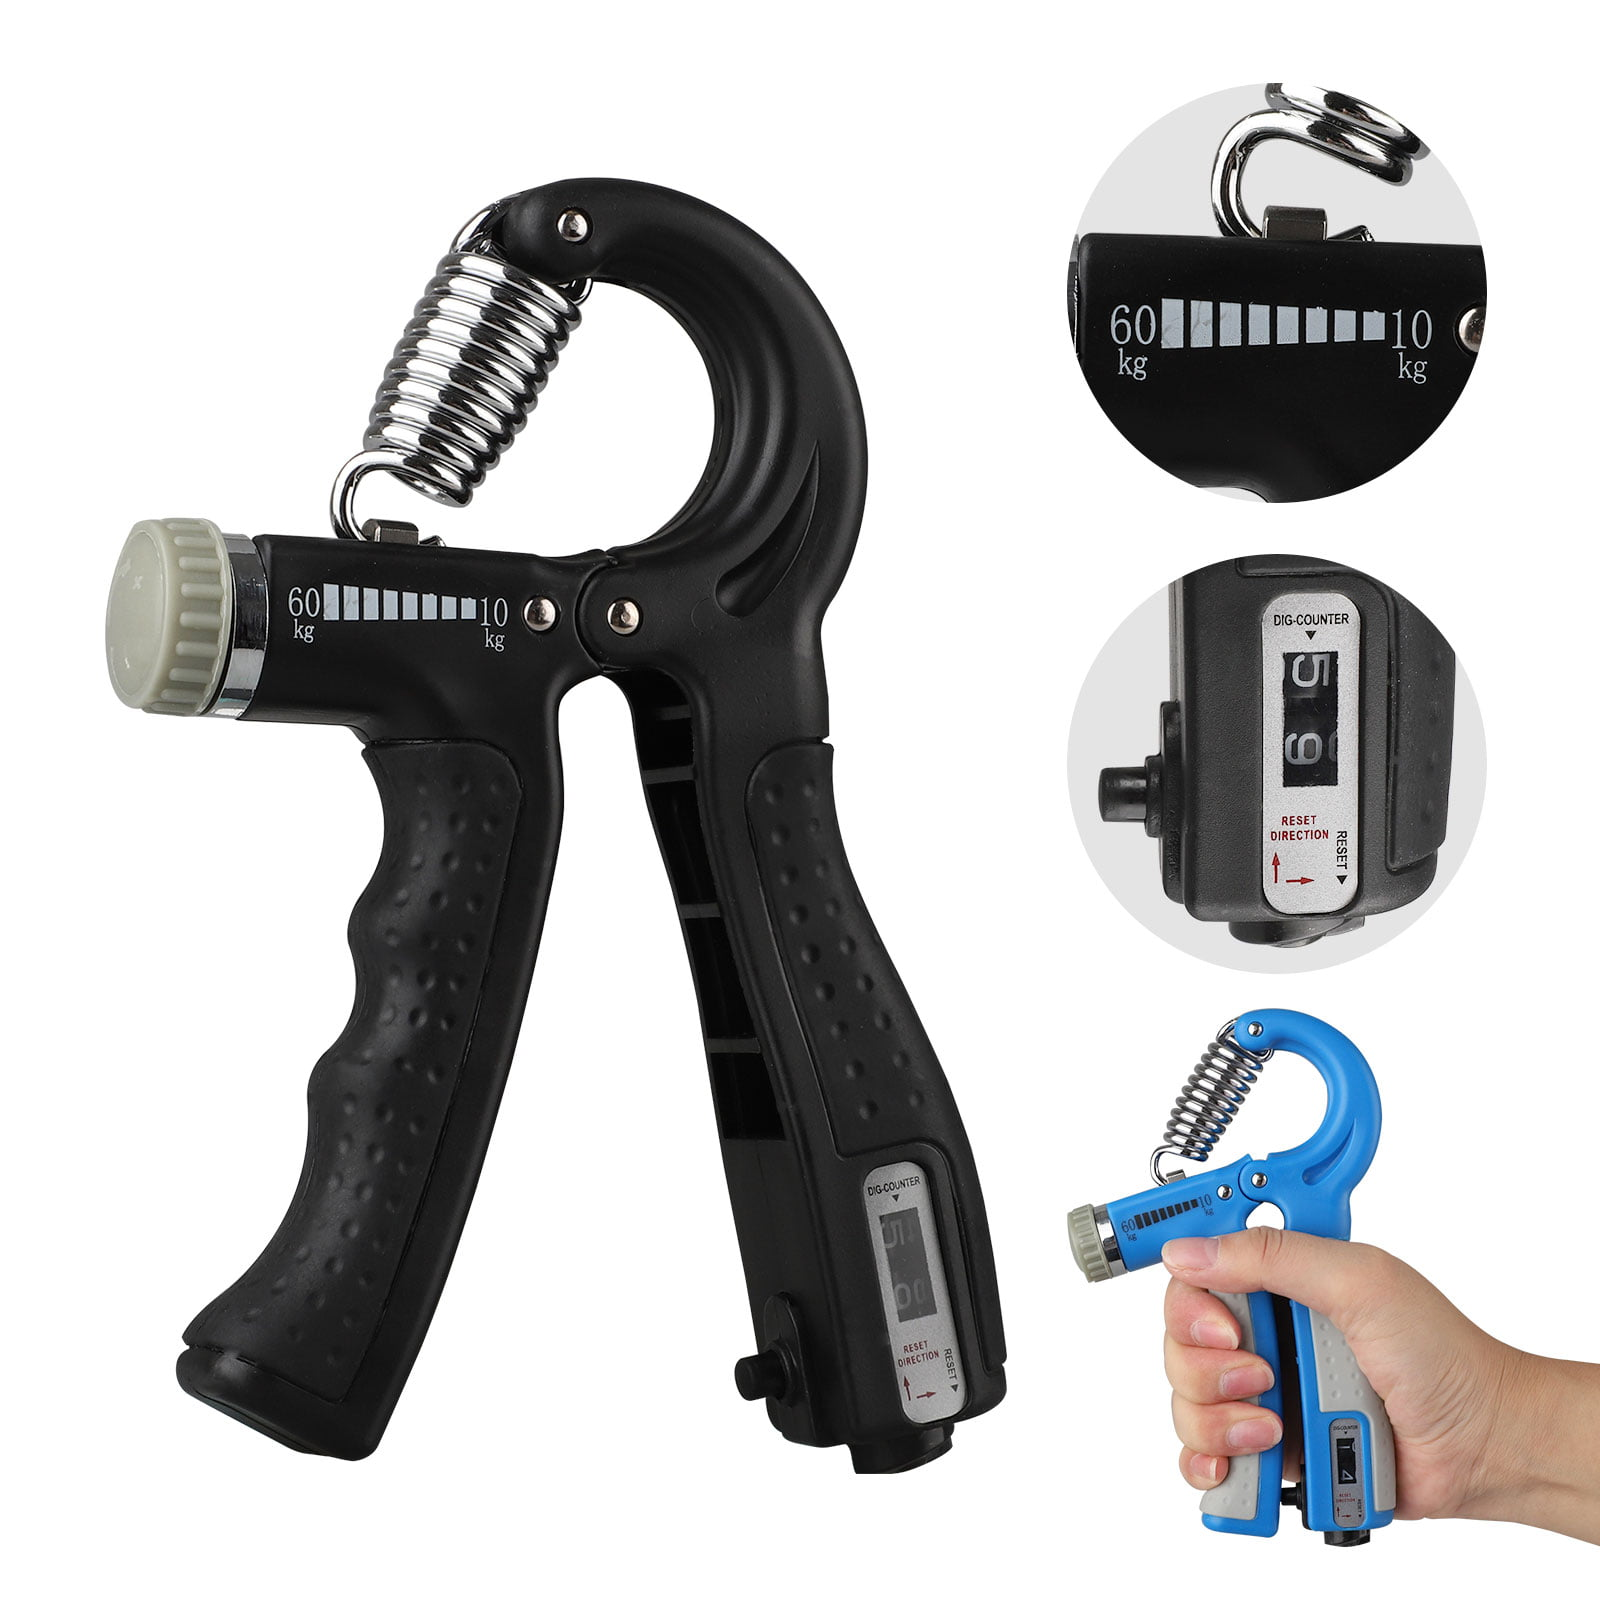 KDG Hand Grip Strengthener Gold 2 Pack Adjustable Resistance 5-60 kg Forearm Exerciser,Grip Strength Trainer for Muscle Building and Injury Recovery for Athletes